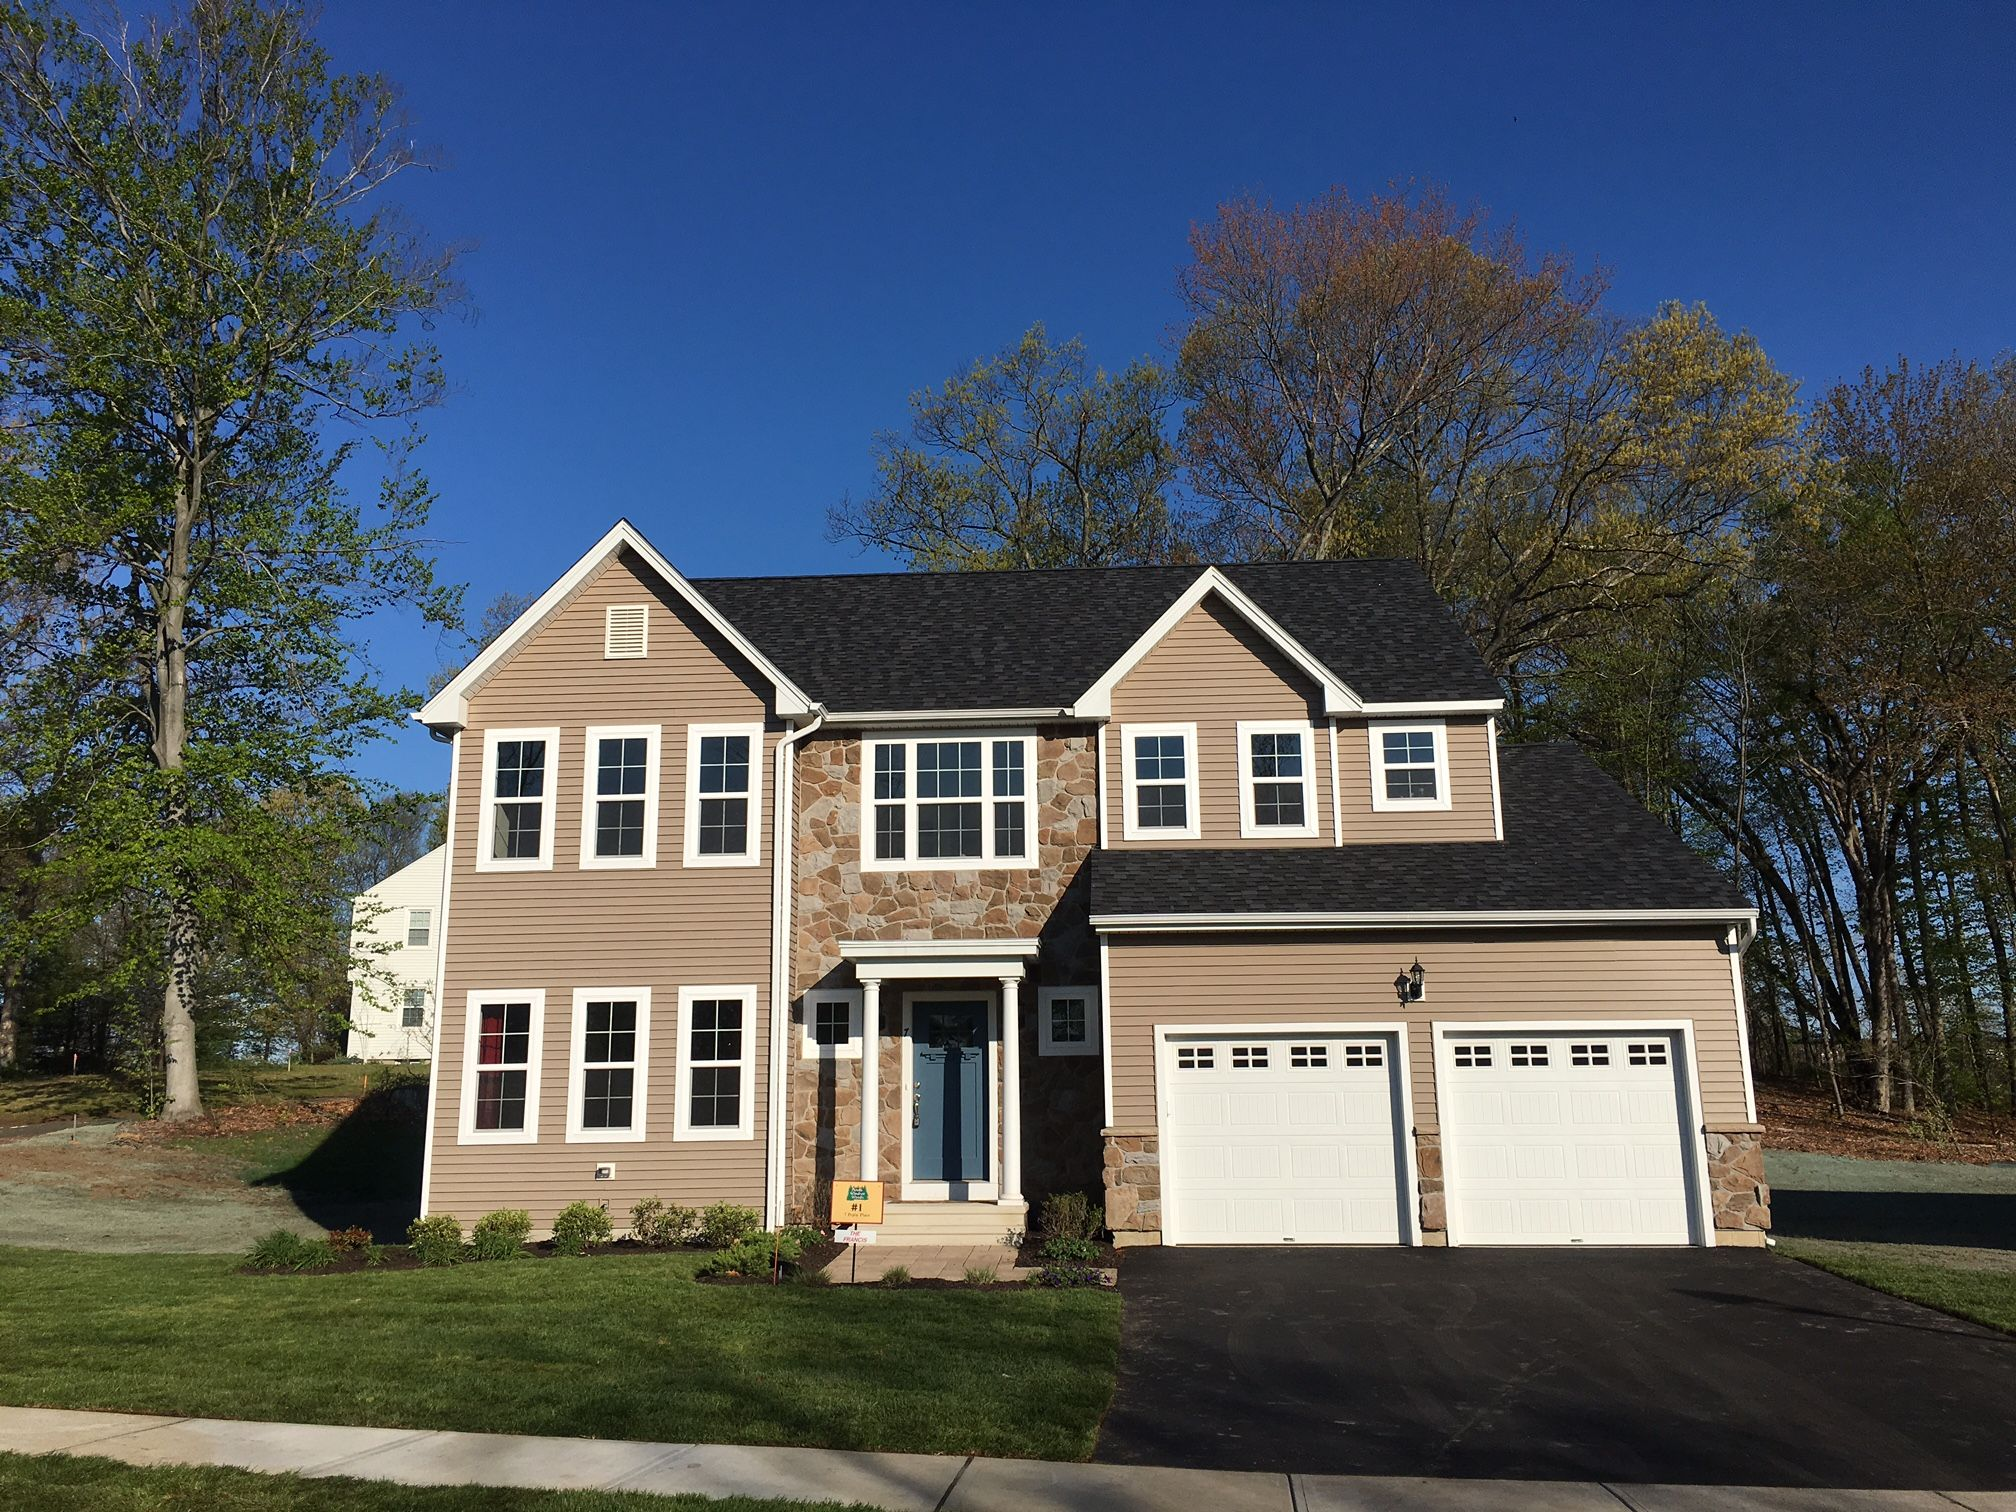 Homebuilder designs in south windsor ct movenewhomes for Ct home builders